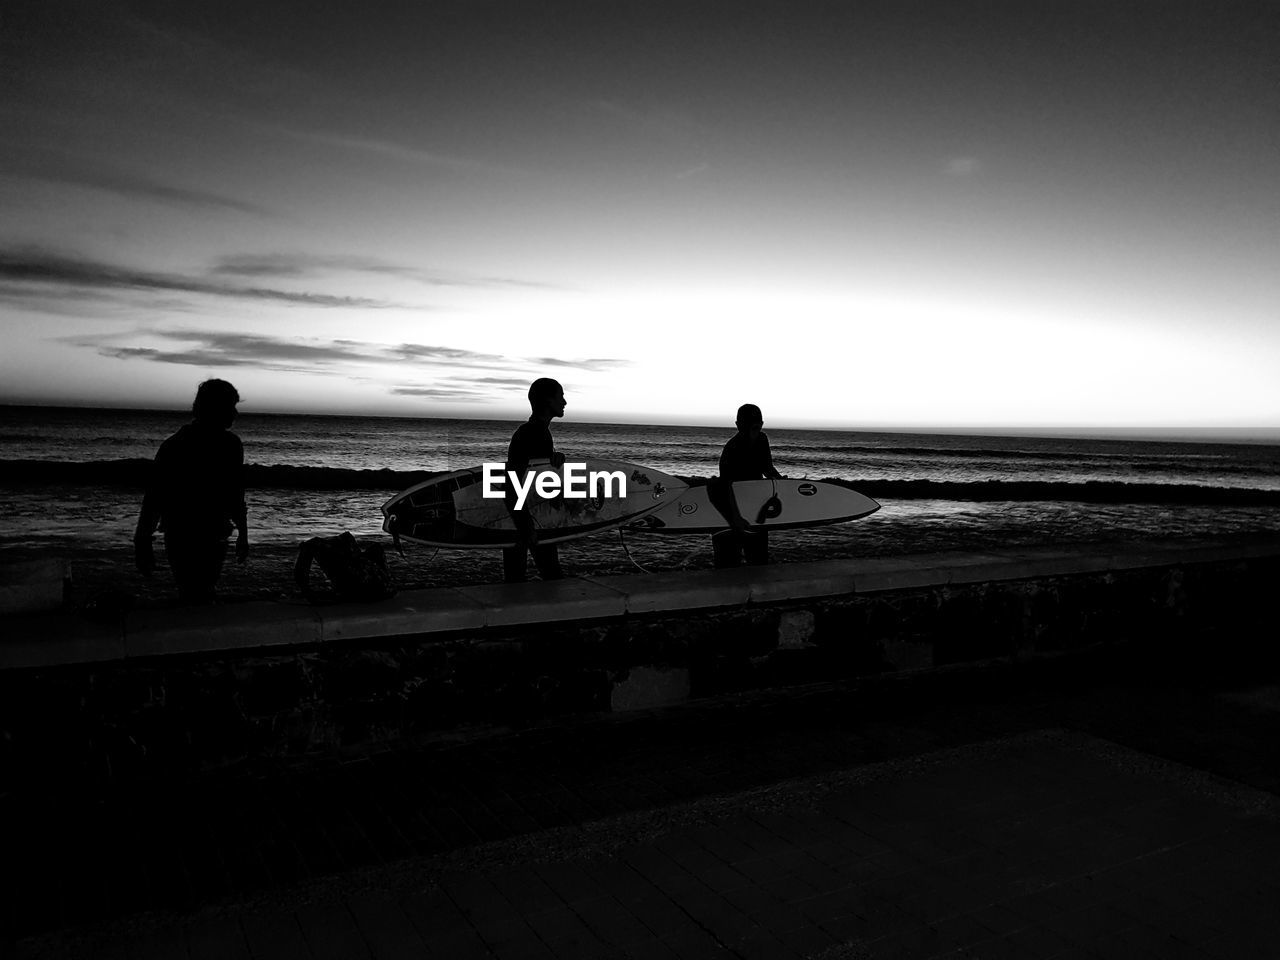 water, sky, sea, real people, men, silhouette, nature, transportation, leisure activity, group of people, horizon, beauty in nature, nautical vessel, people, lifestyles, horizon over water, scenics - nature, sitting, beach, outdoors, looking at view